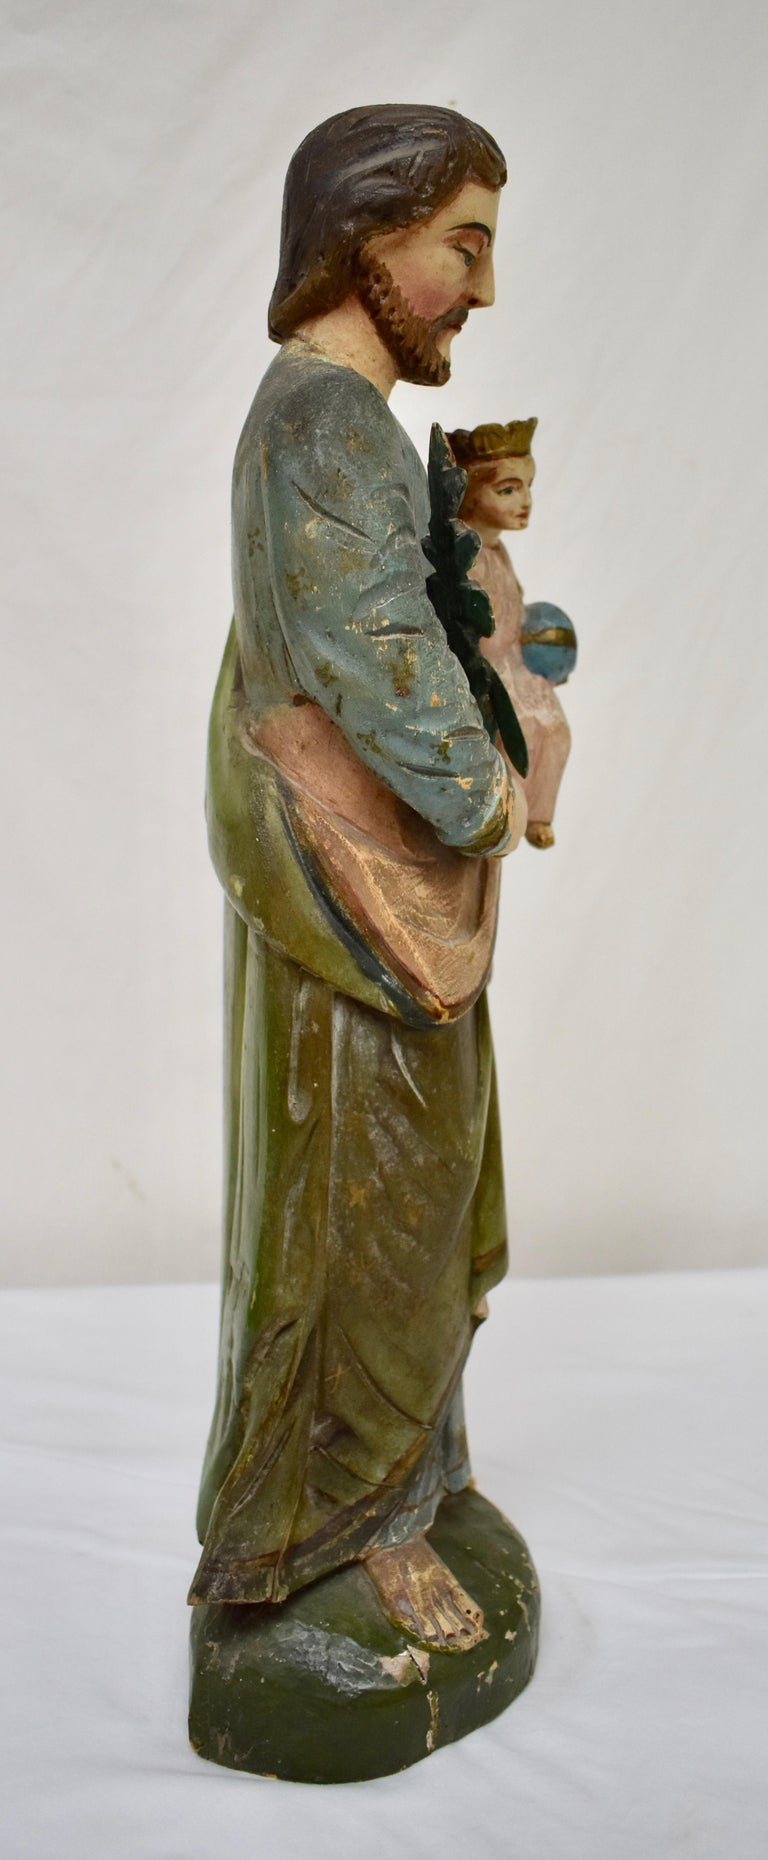 19th Century Hand Carved Wooden Sculpture of Saint Anthony of Padua For Sale